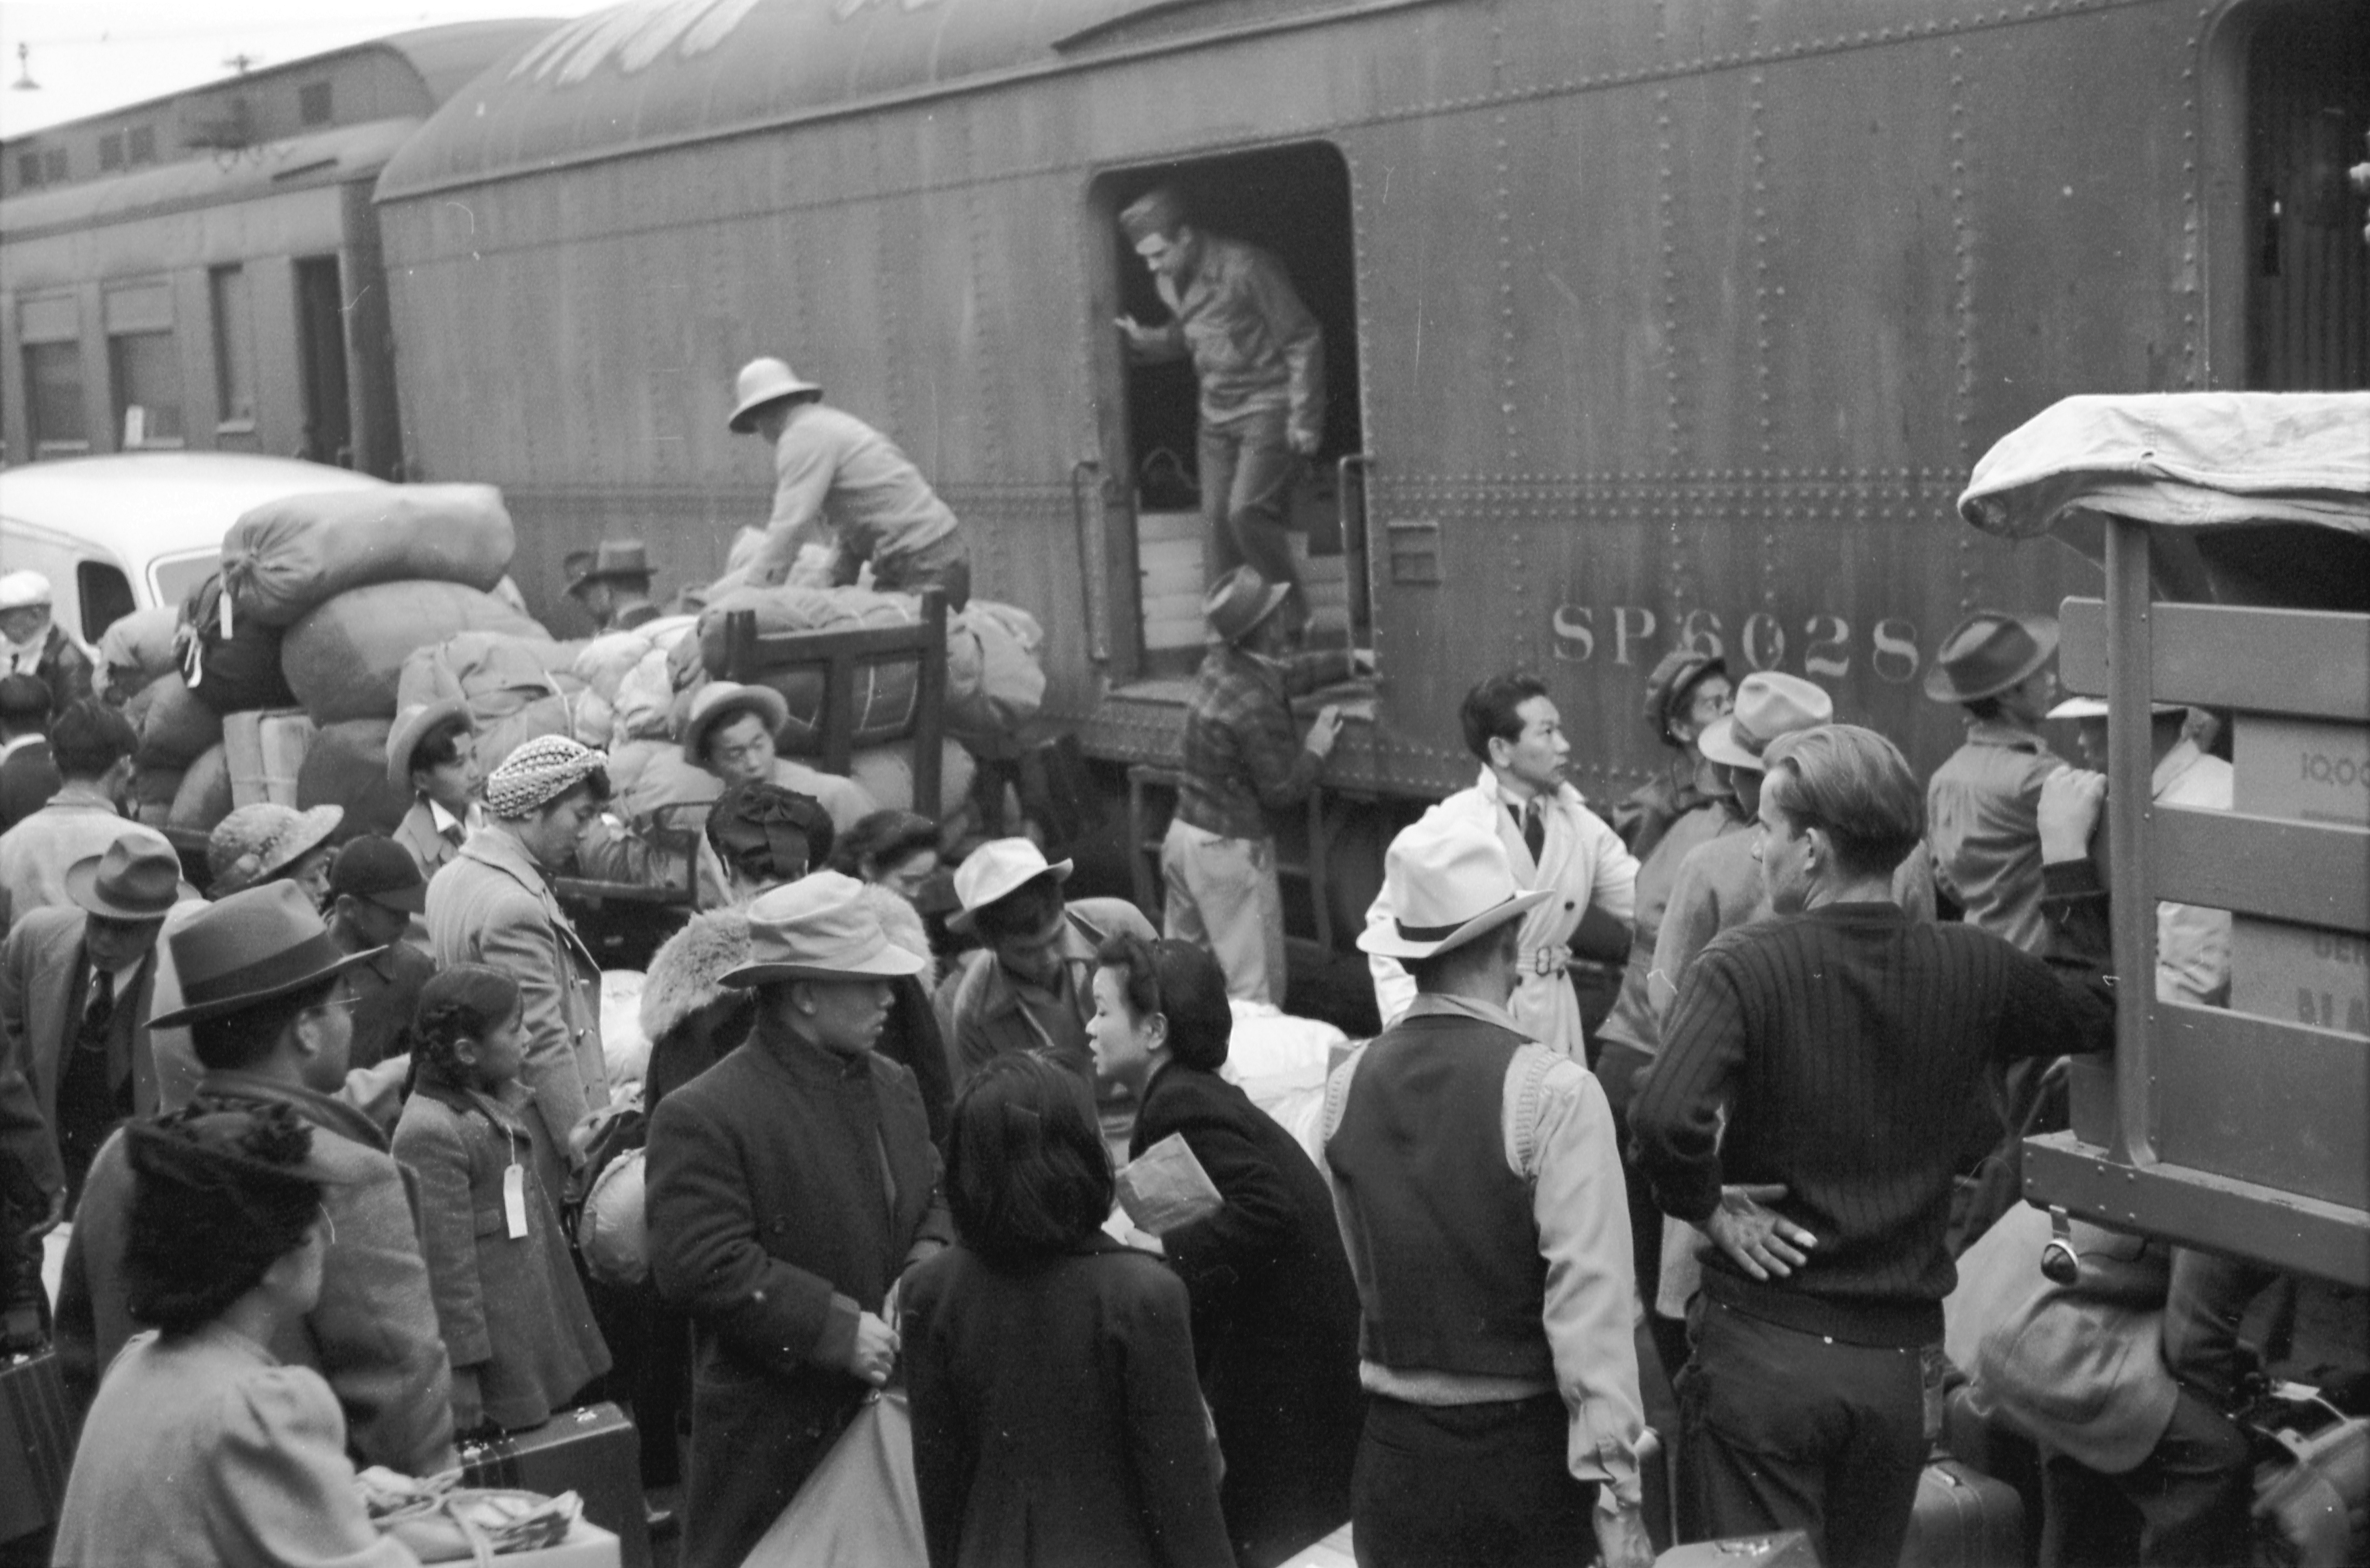 holocaust the japanese american internment Wwii internment timeline august 18, 1941 in a letter to president roosevelt, representative john dingell of michigan suggests incarcerating 10,000 hawaiian japanese americans as hostages to.